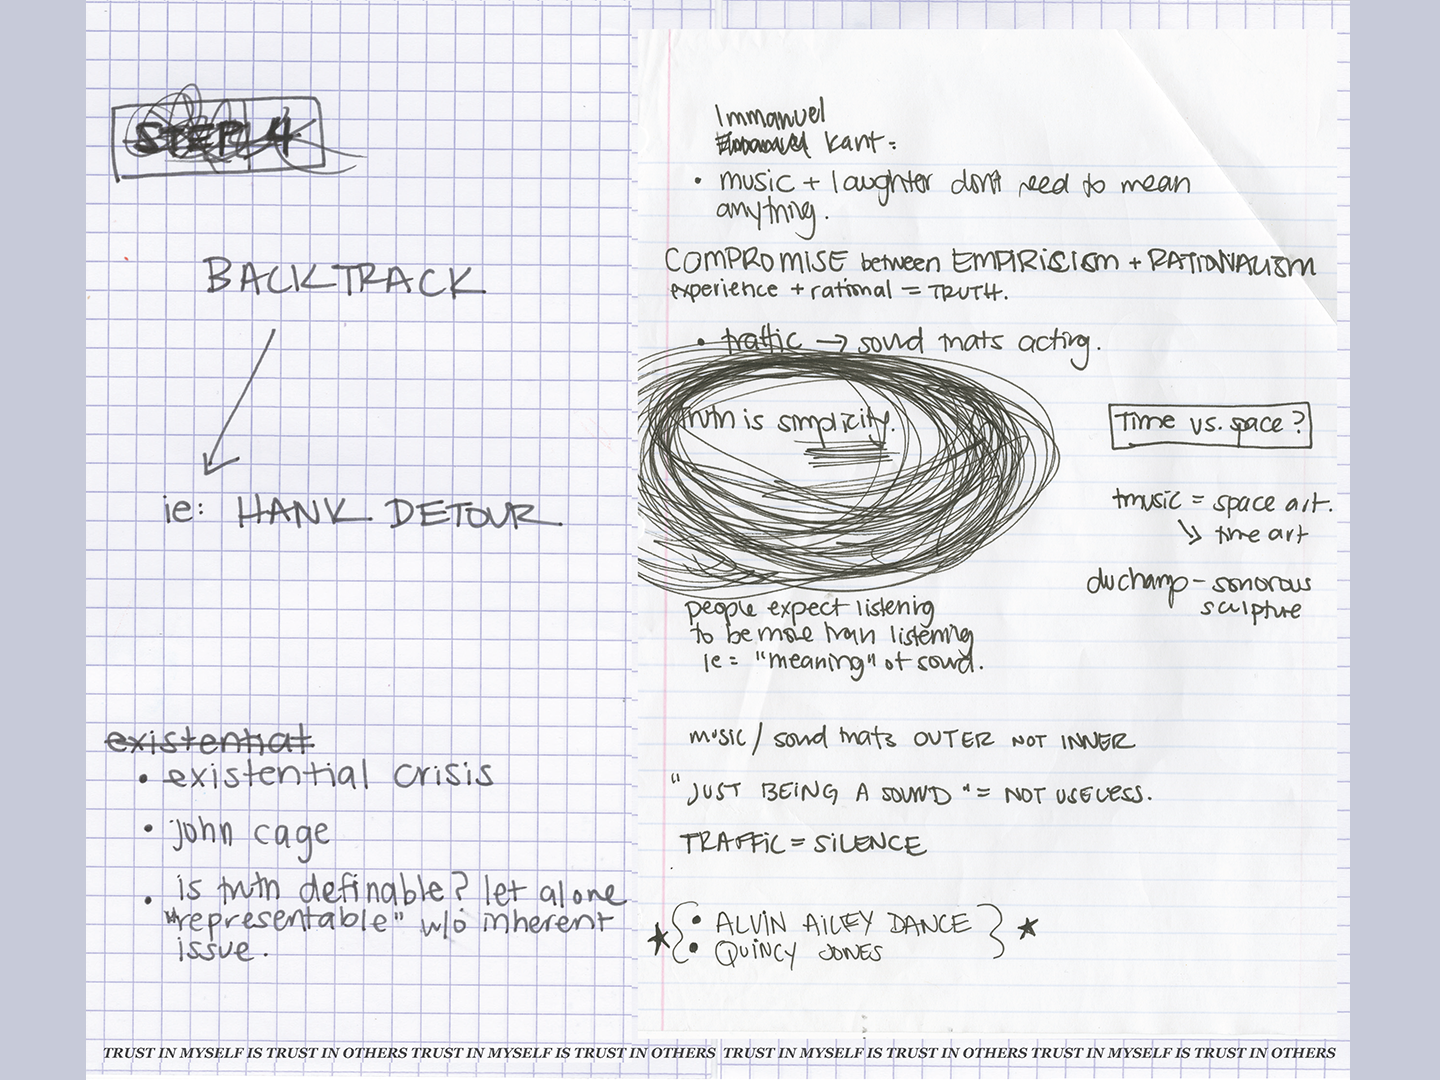 CHAIR_Prototype_Notes4